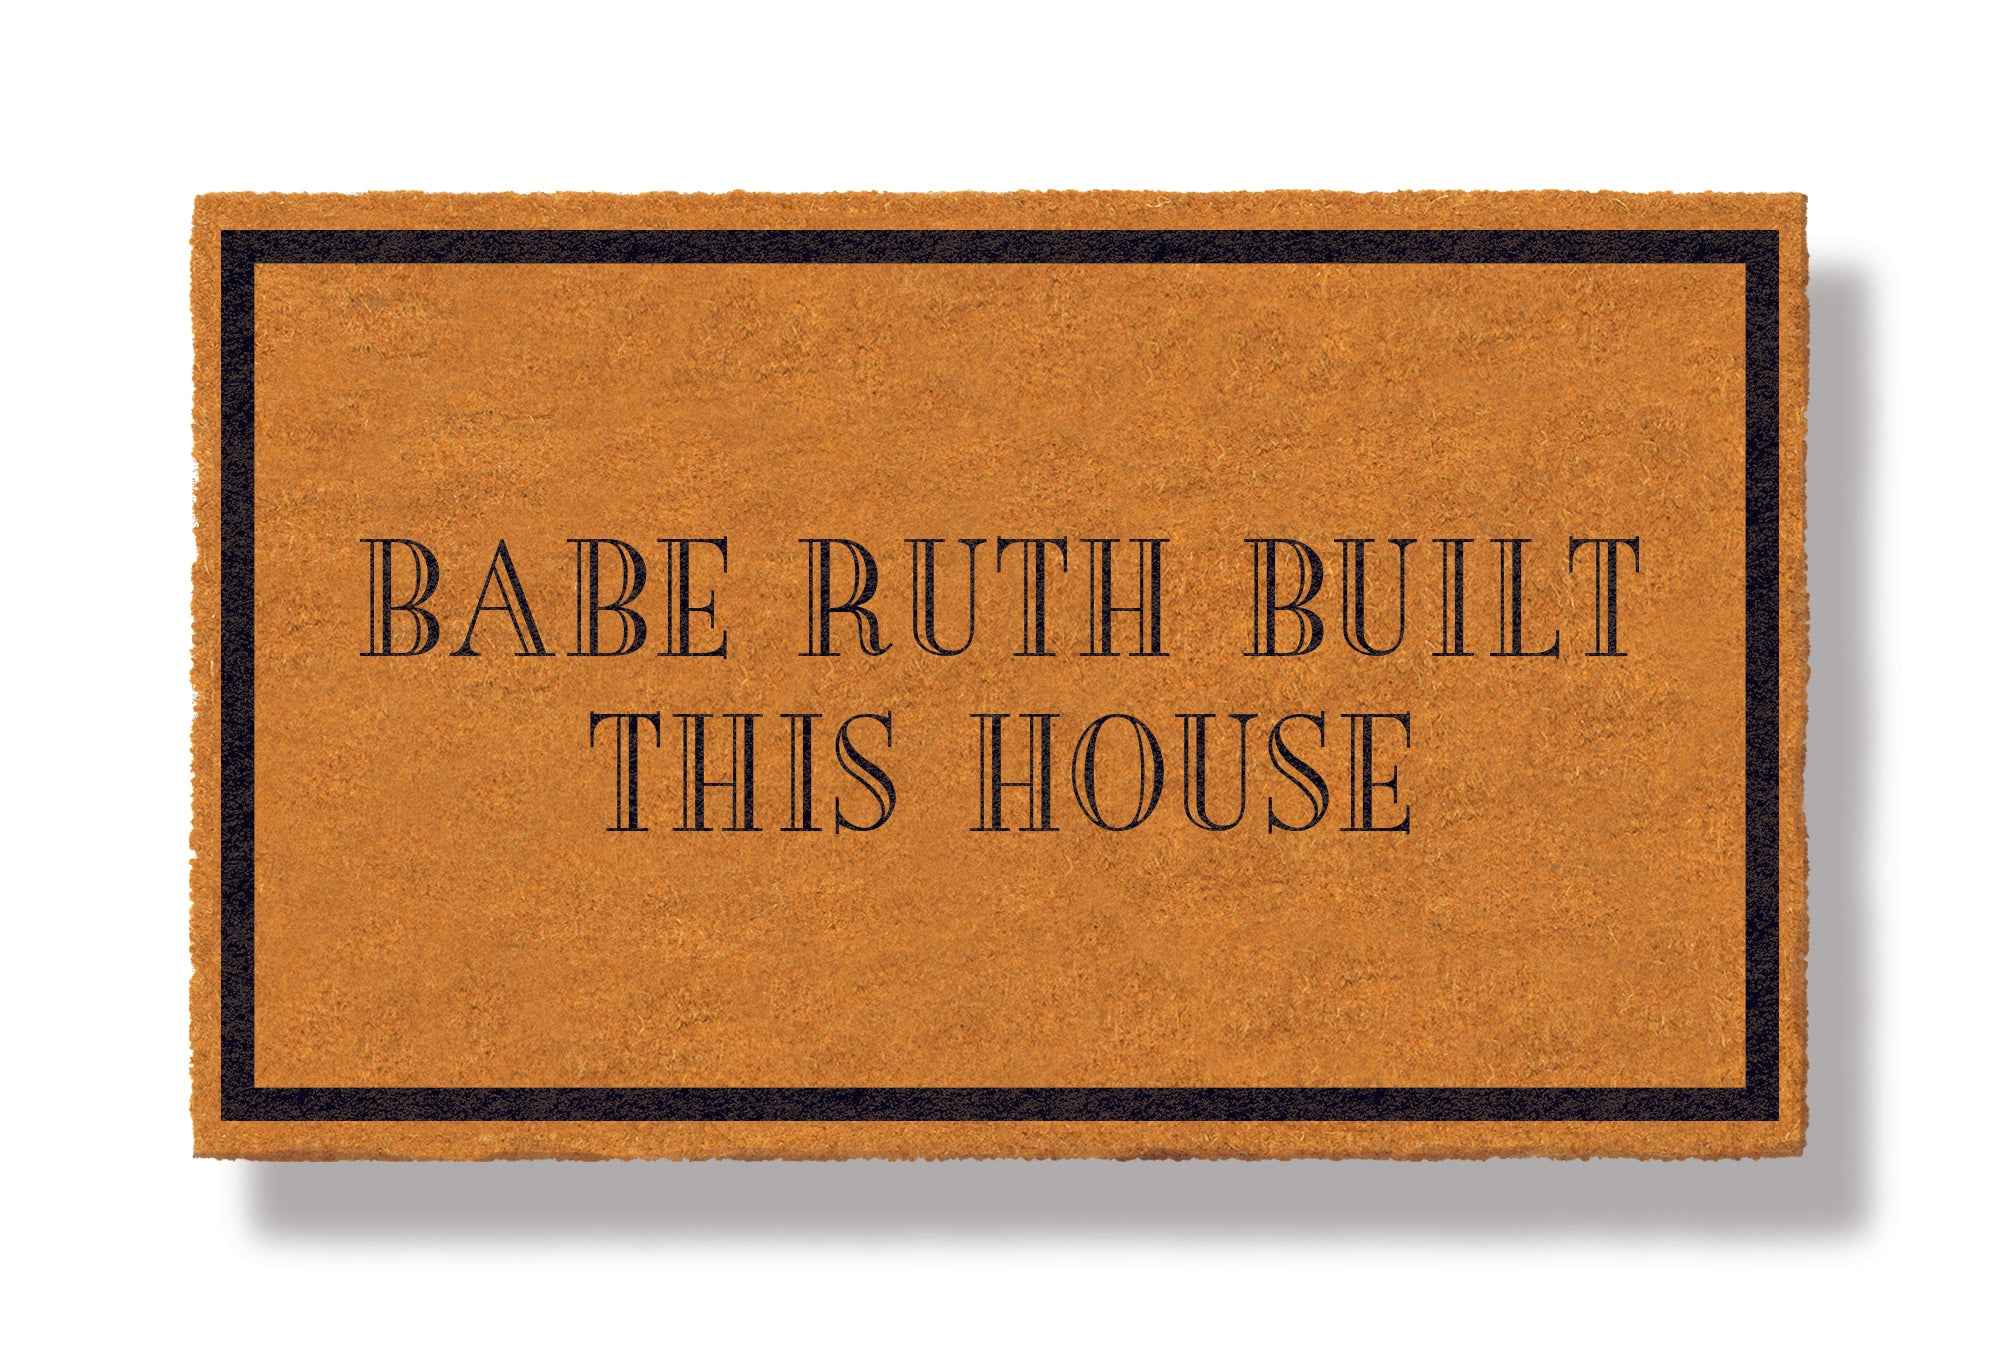 This coir welcome mat is a funny doormat on a white background with a drop shadow. The brown doormat has a black border and has black centered text that reads Babe Ruth Built This House.